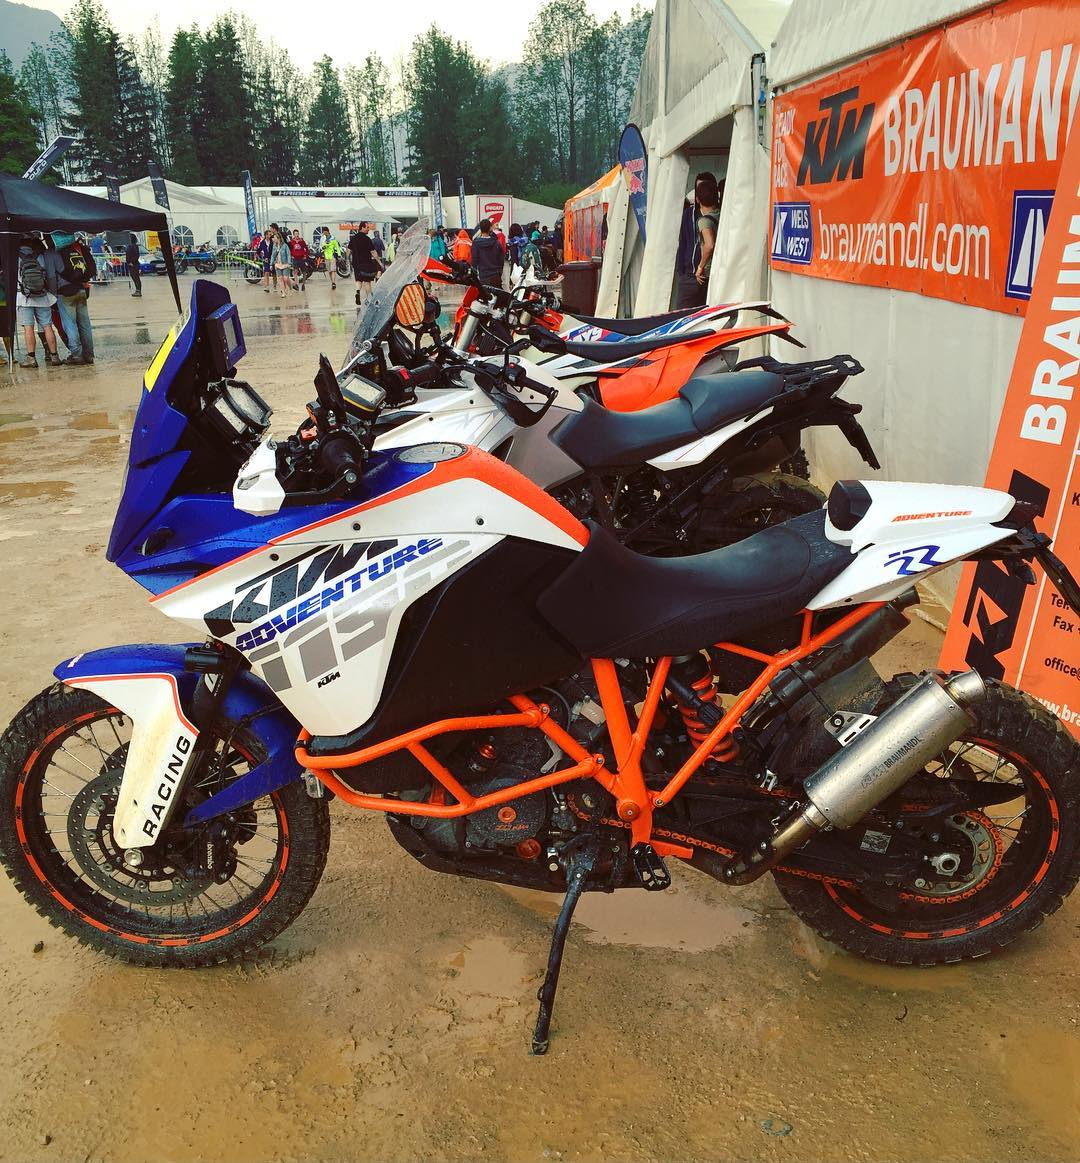 Super cool real life bikenstein from KTM Braumantal! #KTM #adventure #superduke #ktmadventure